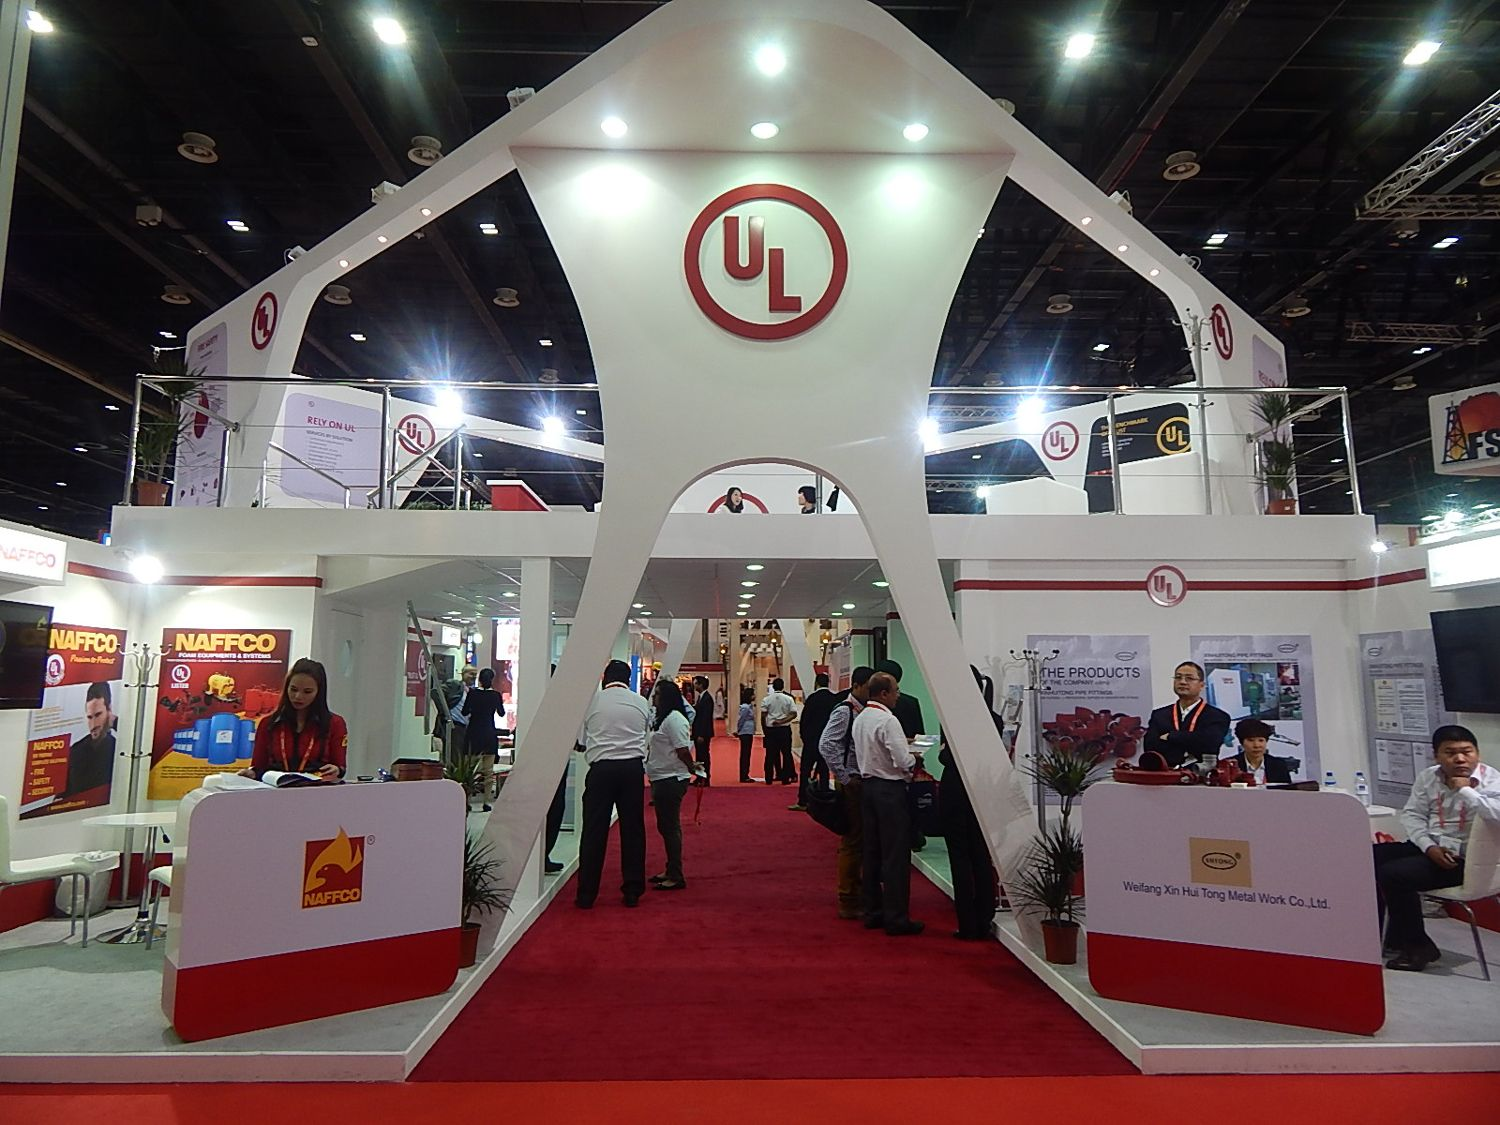 Exhibition Booth Requirements : Ul exhibition booth in dubai